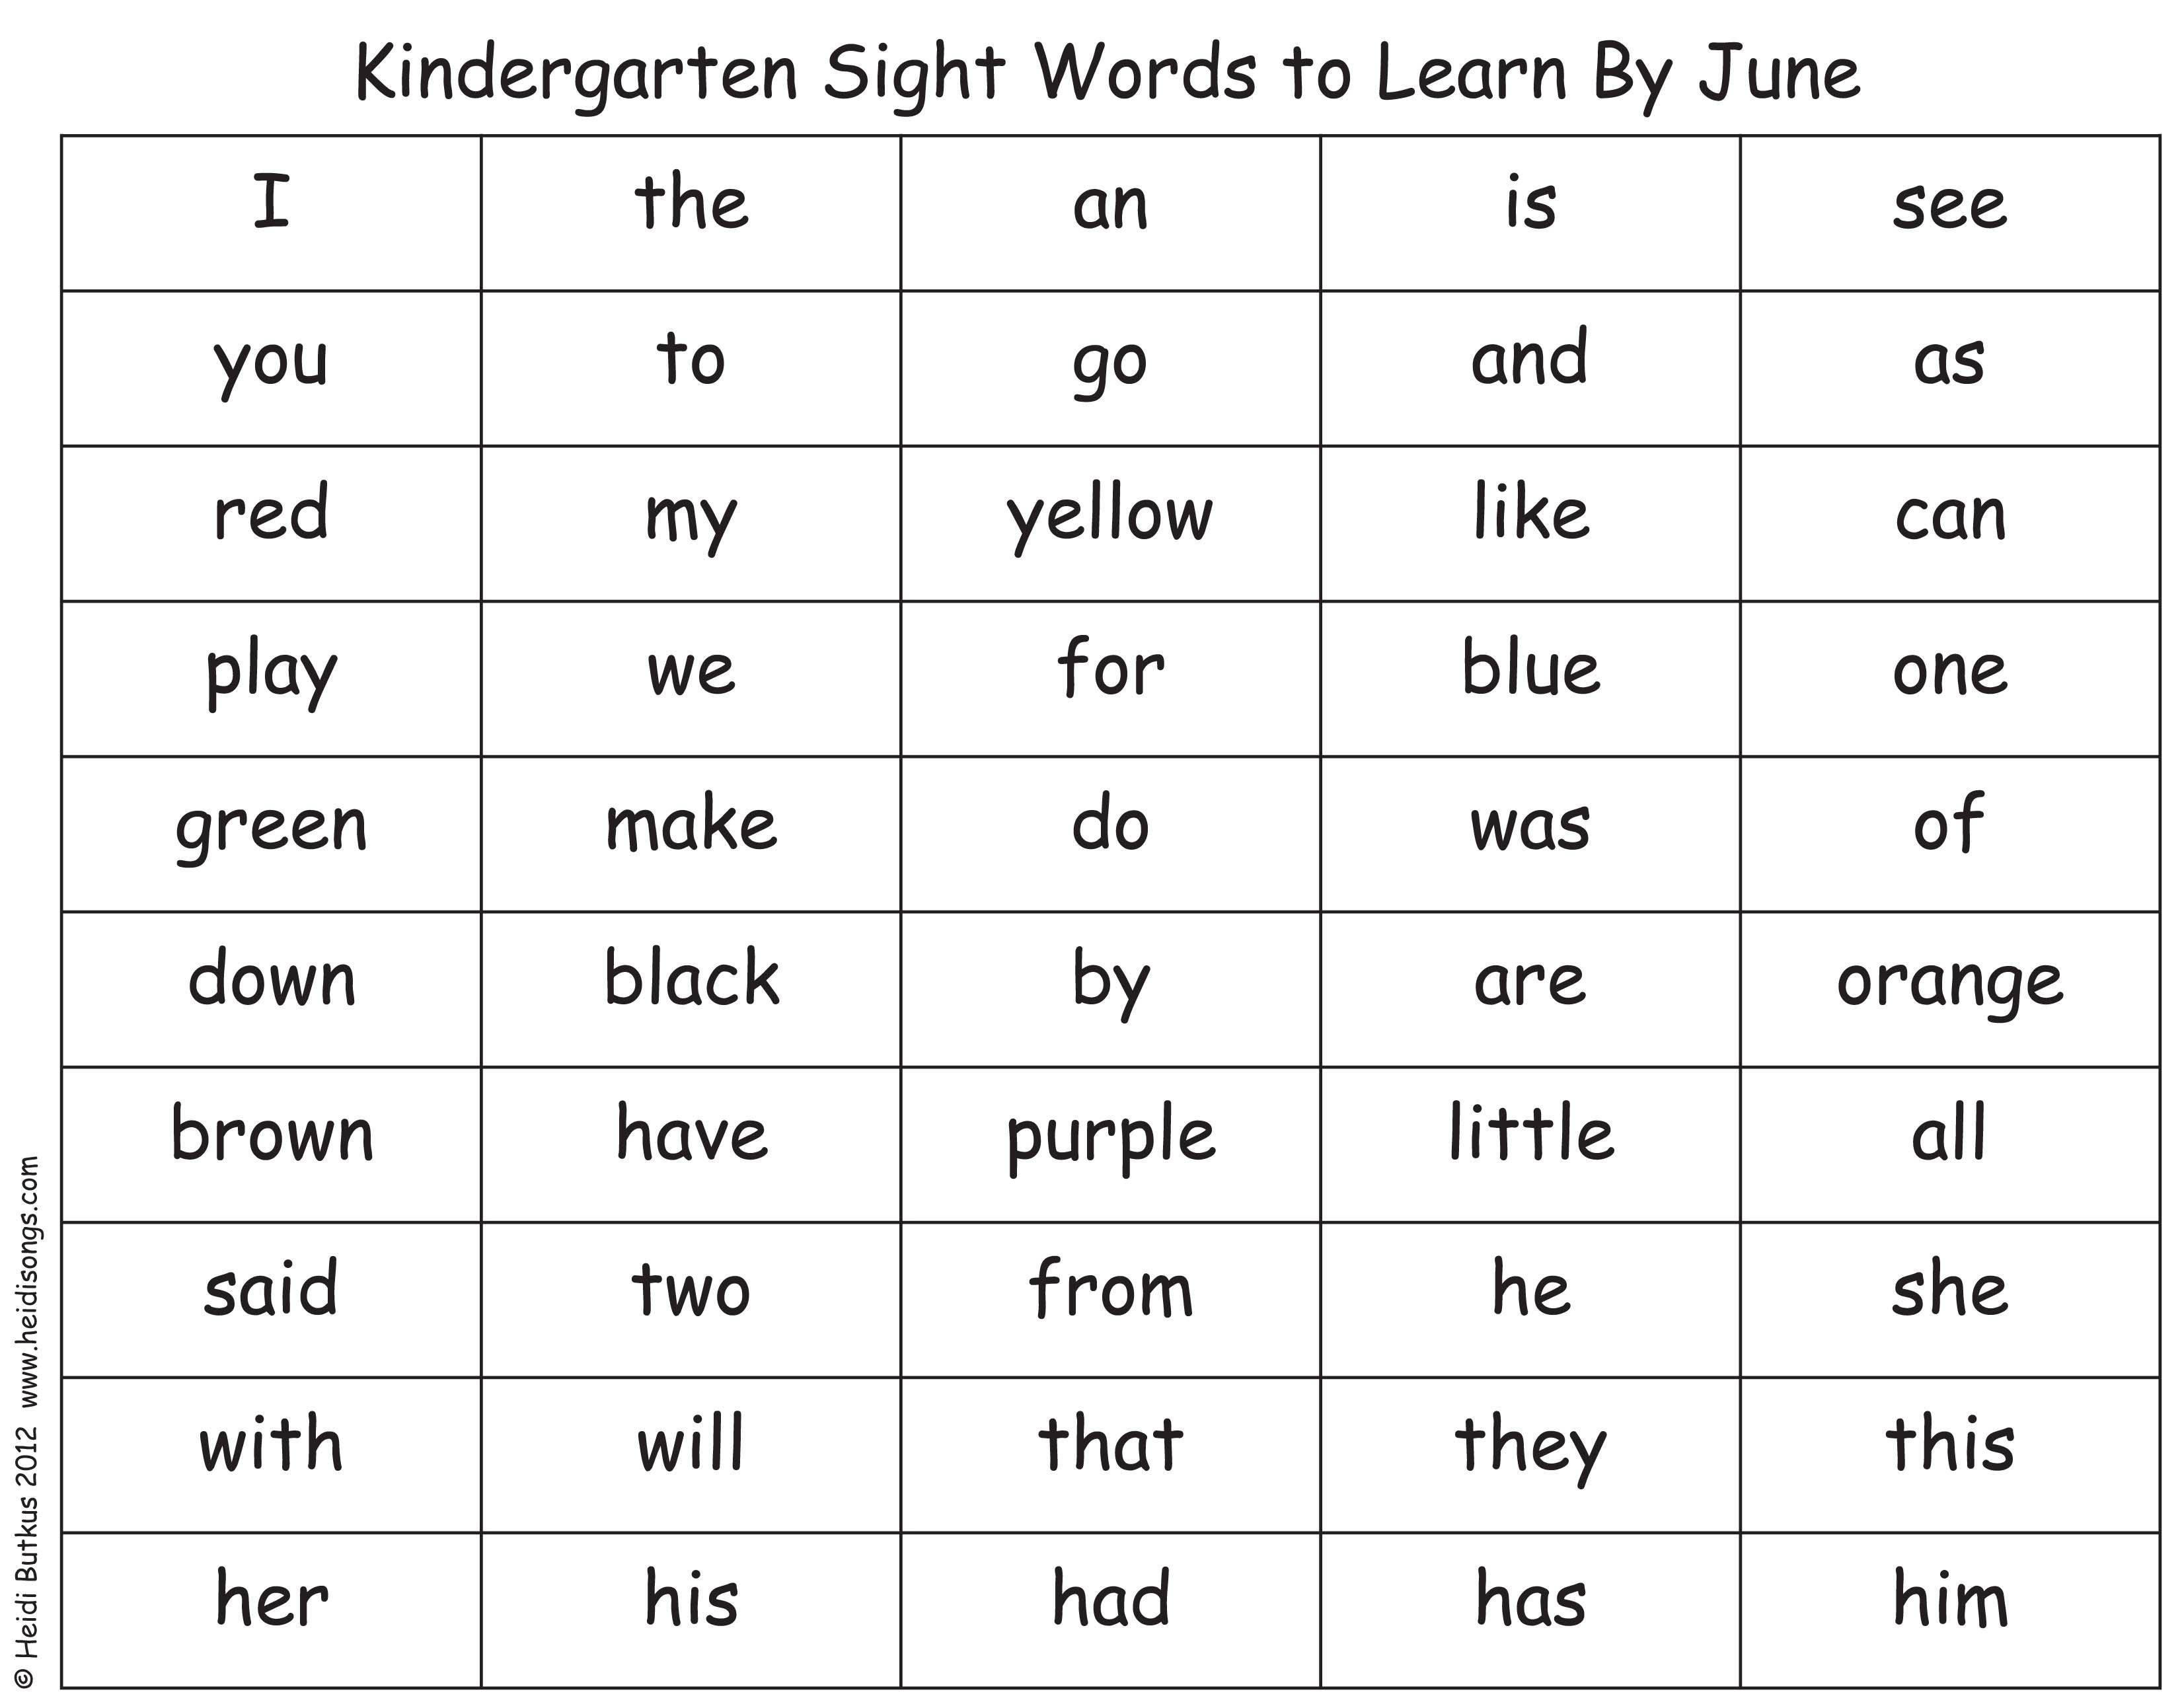 Kindergarten Sight Words Dolch Scalien – Printable Sight Word Worksheets for Kindergarten